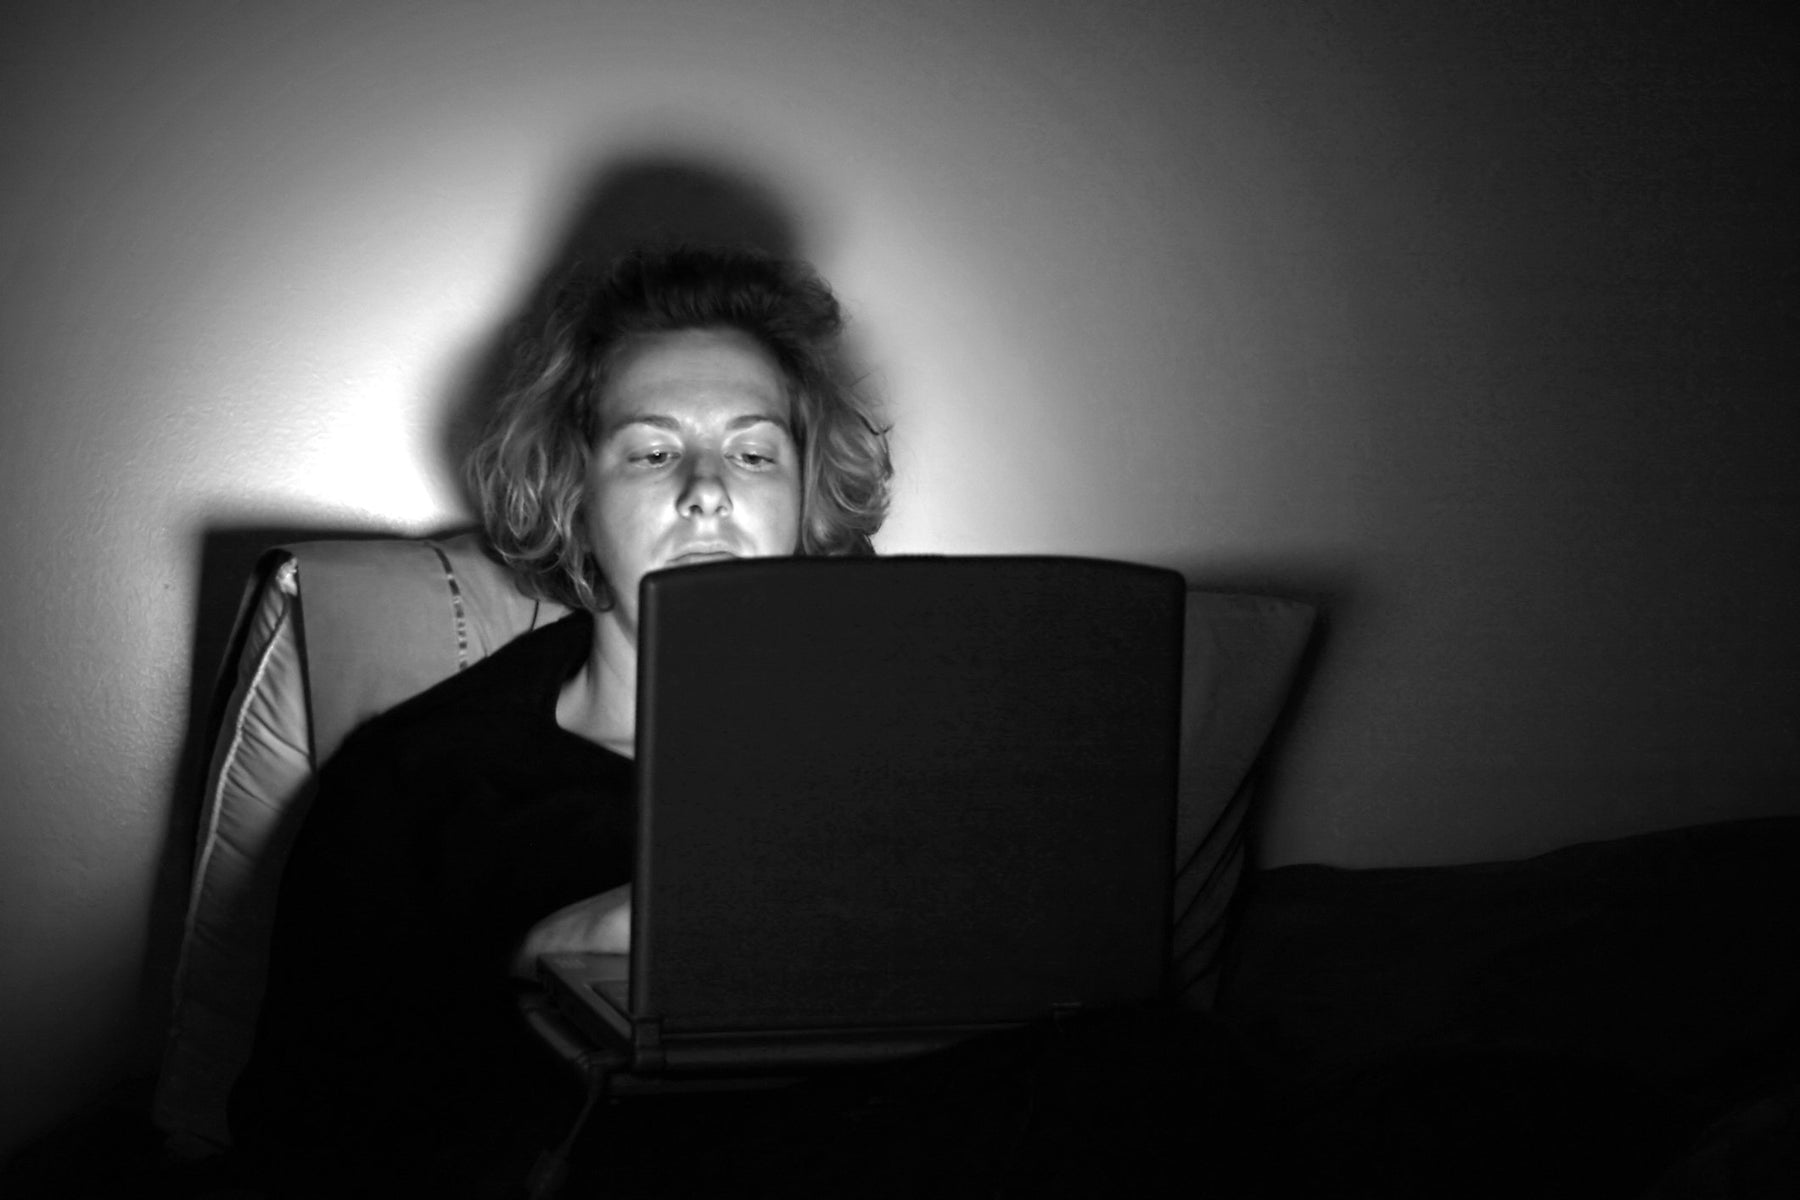 Person On Computer Late Night In Bed Awake